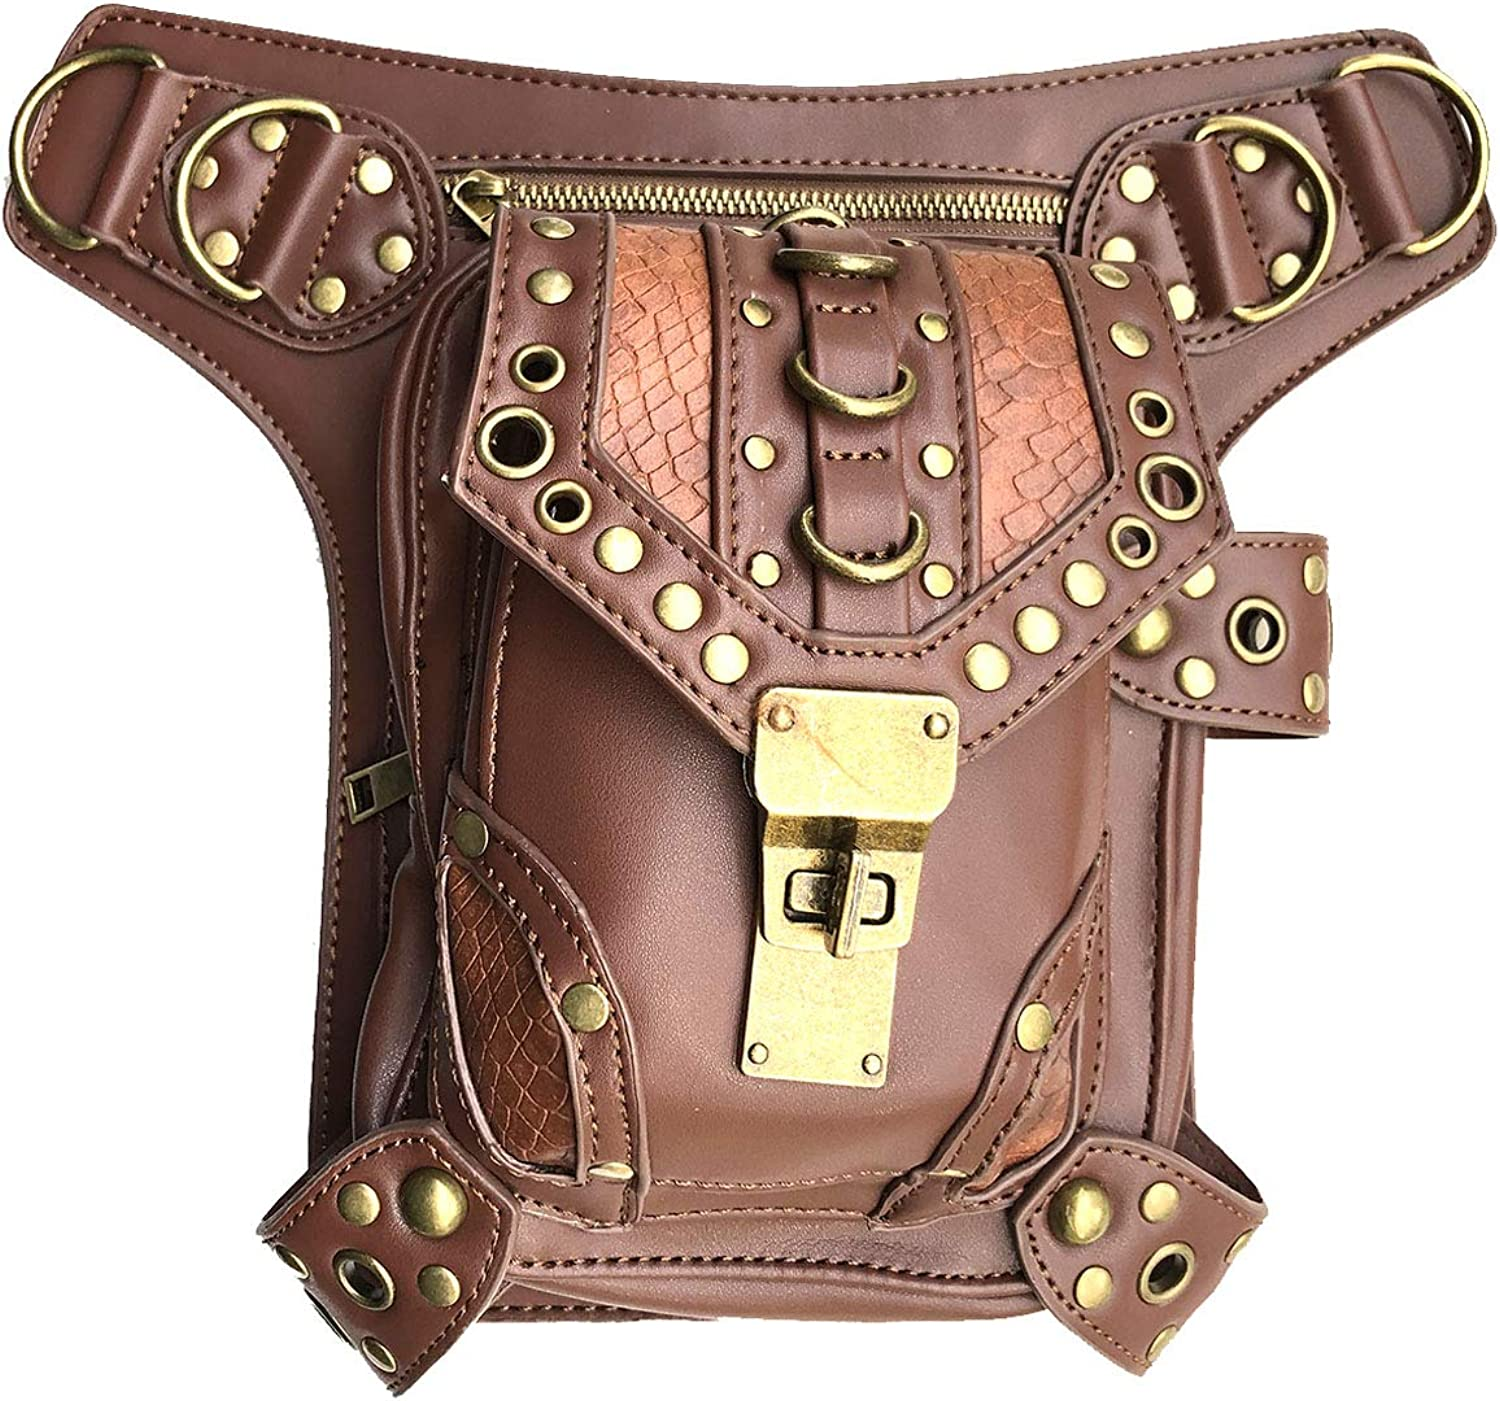 Valentoria Steampunk Waist Bag Fanny Pack Thigh Holster Purse Pouch Retro Fashion Gothic Casual Leather Shoulder Crossbody Messenger Bags Punk Rock Travel Hiking Sport Chain Wallet Bag for Women Men